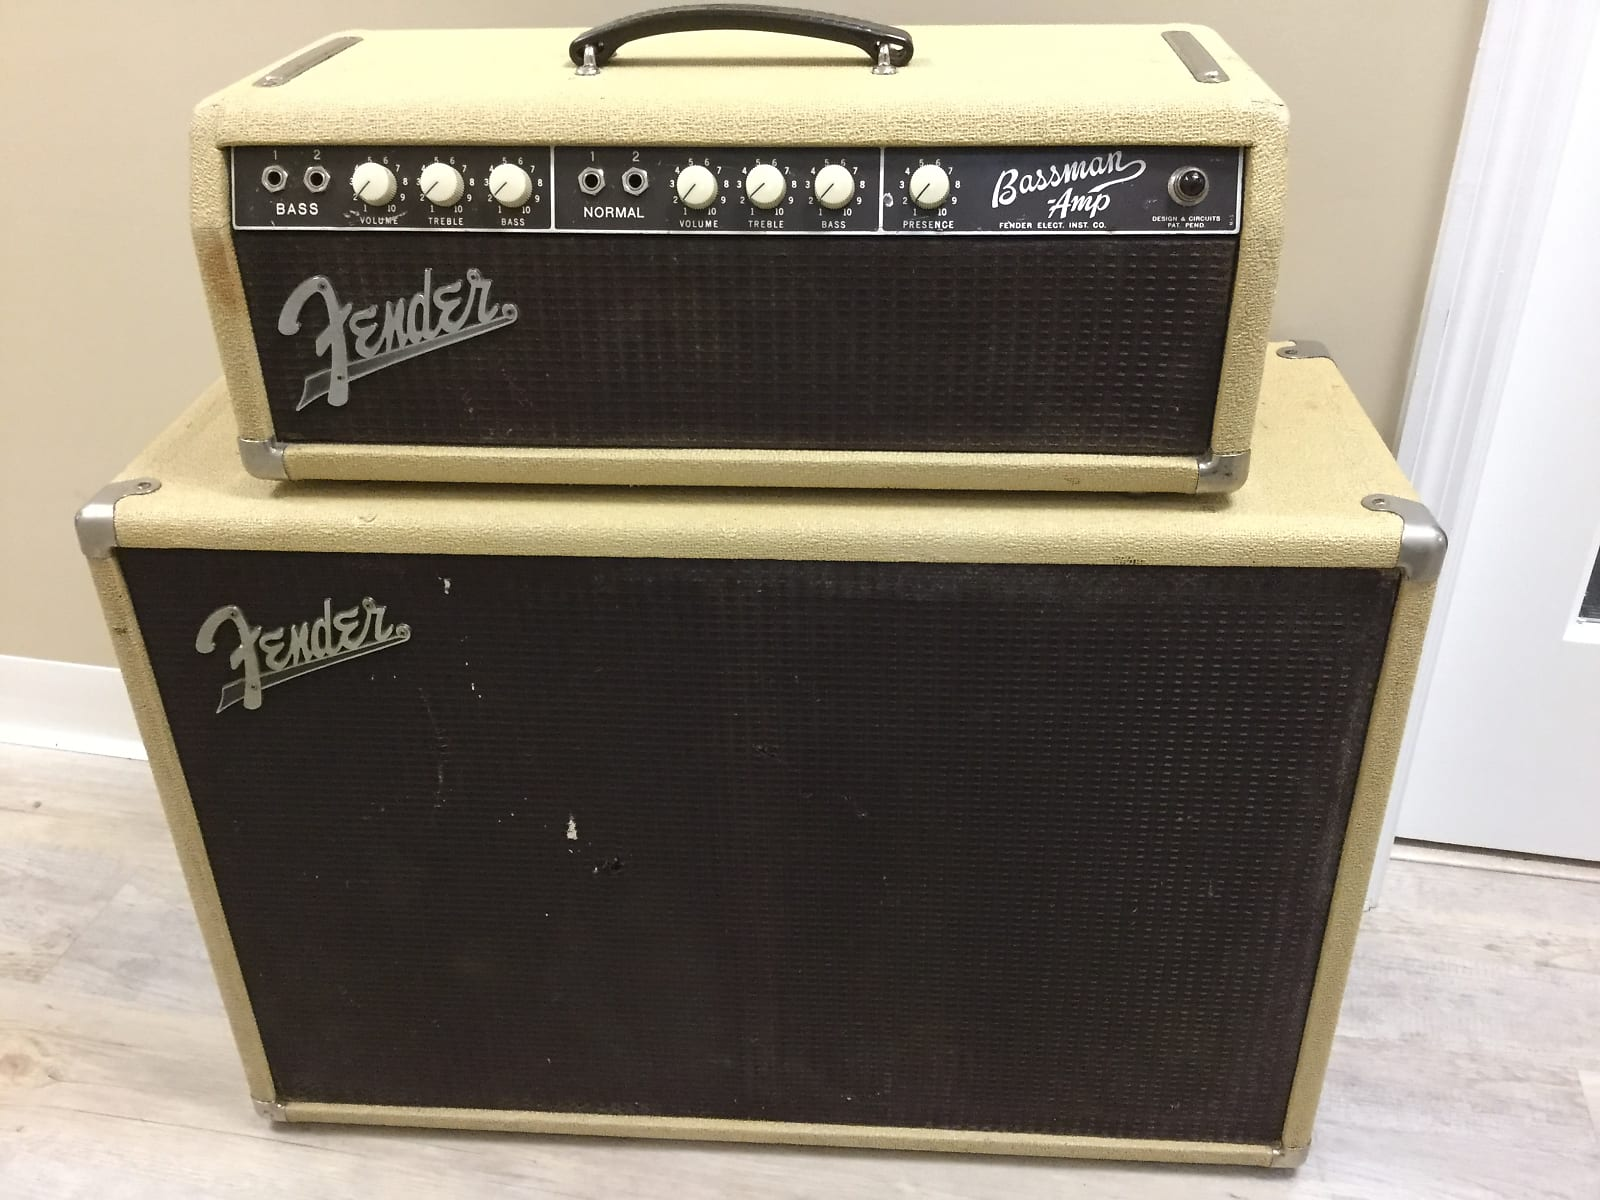 Fender Bassman Head and Cabinet 1962 2x12